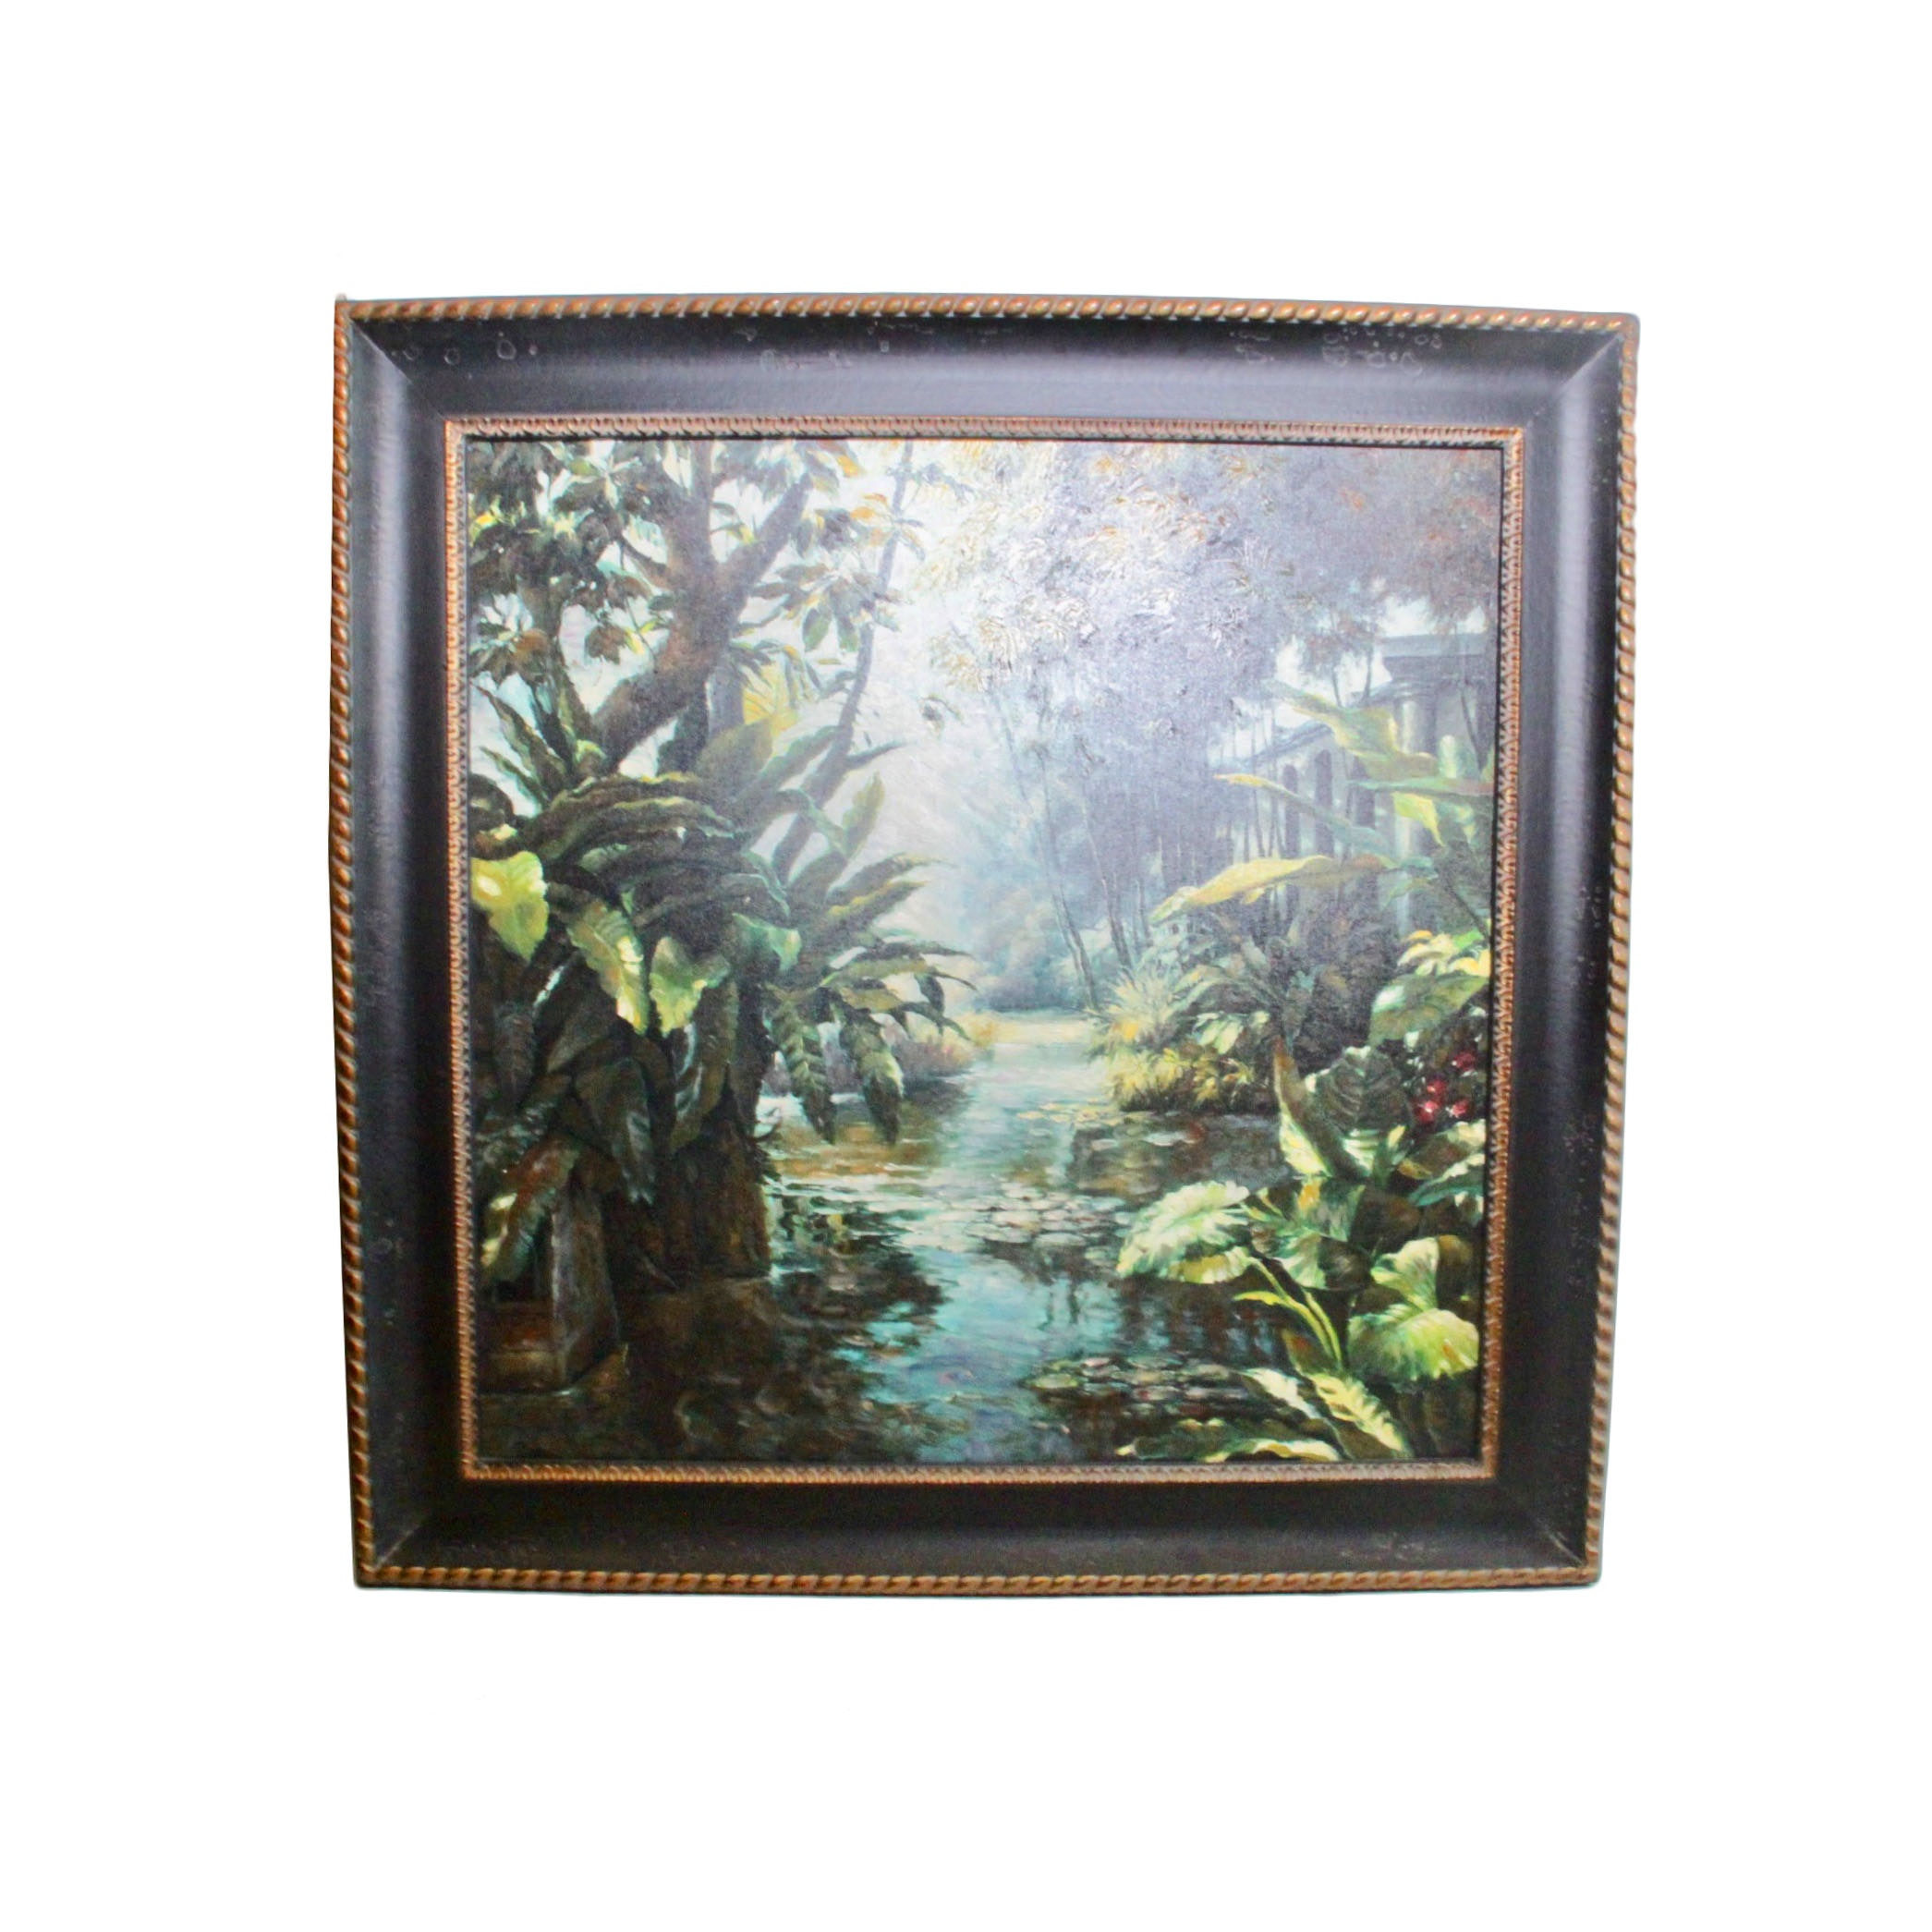 Acrylic on Canvas Painting of Tropical Landscape